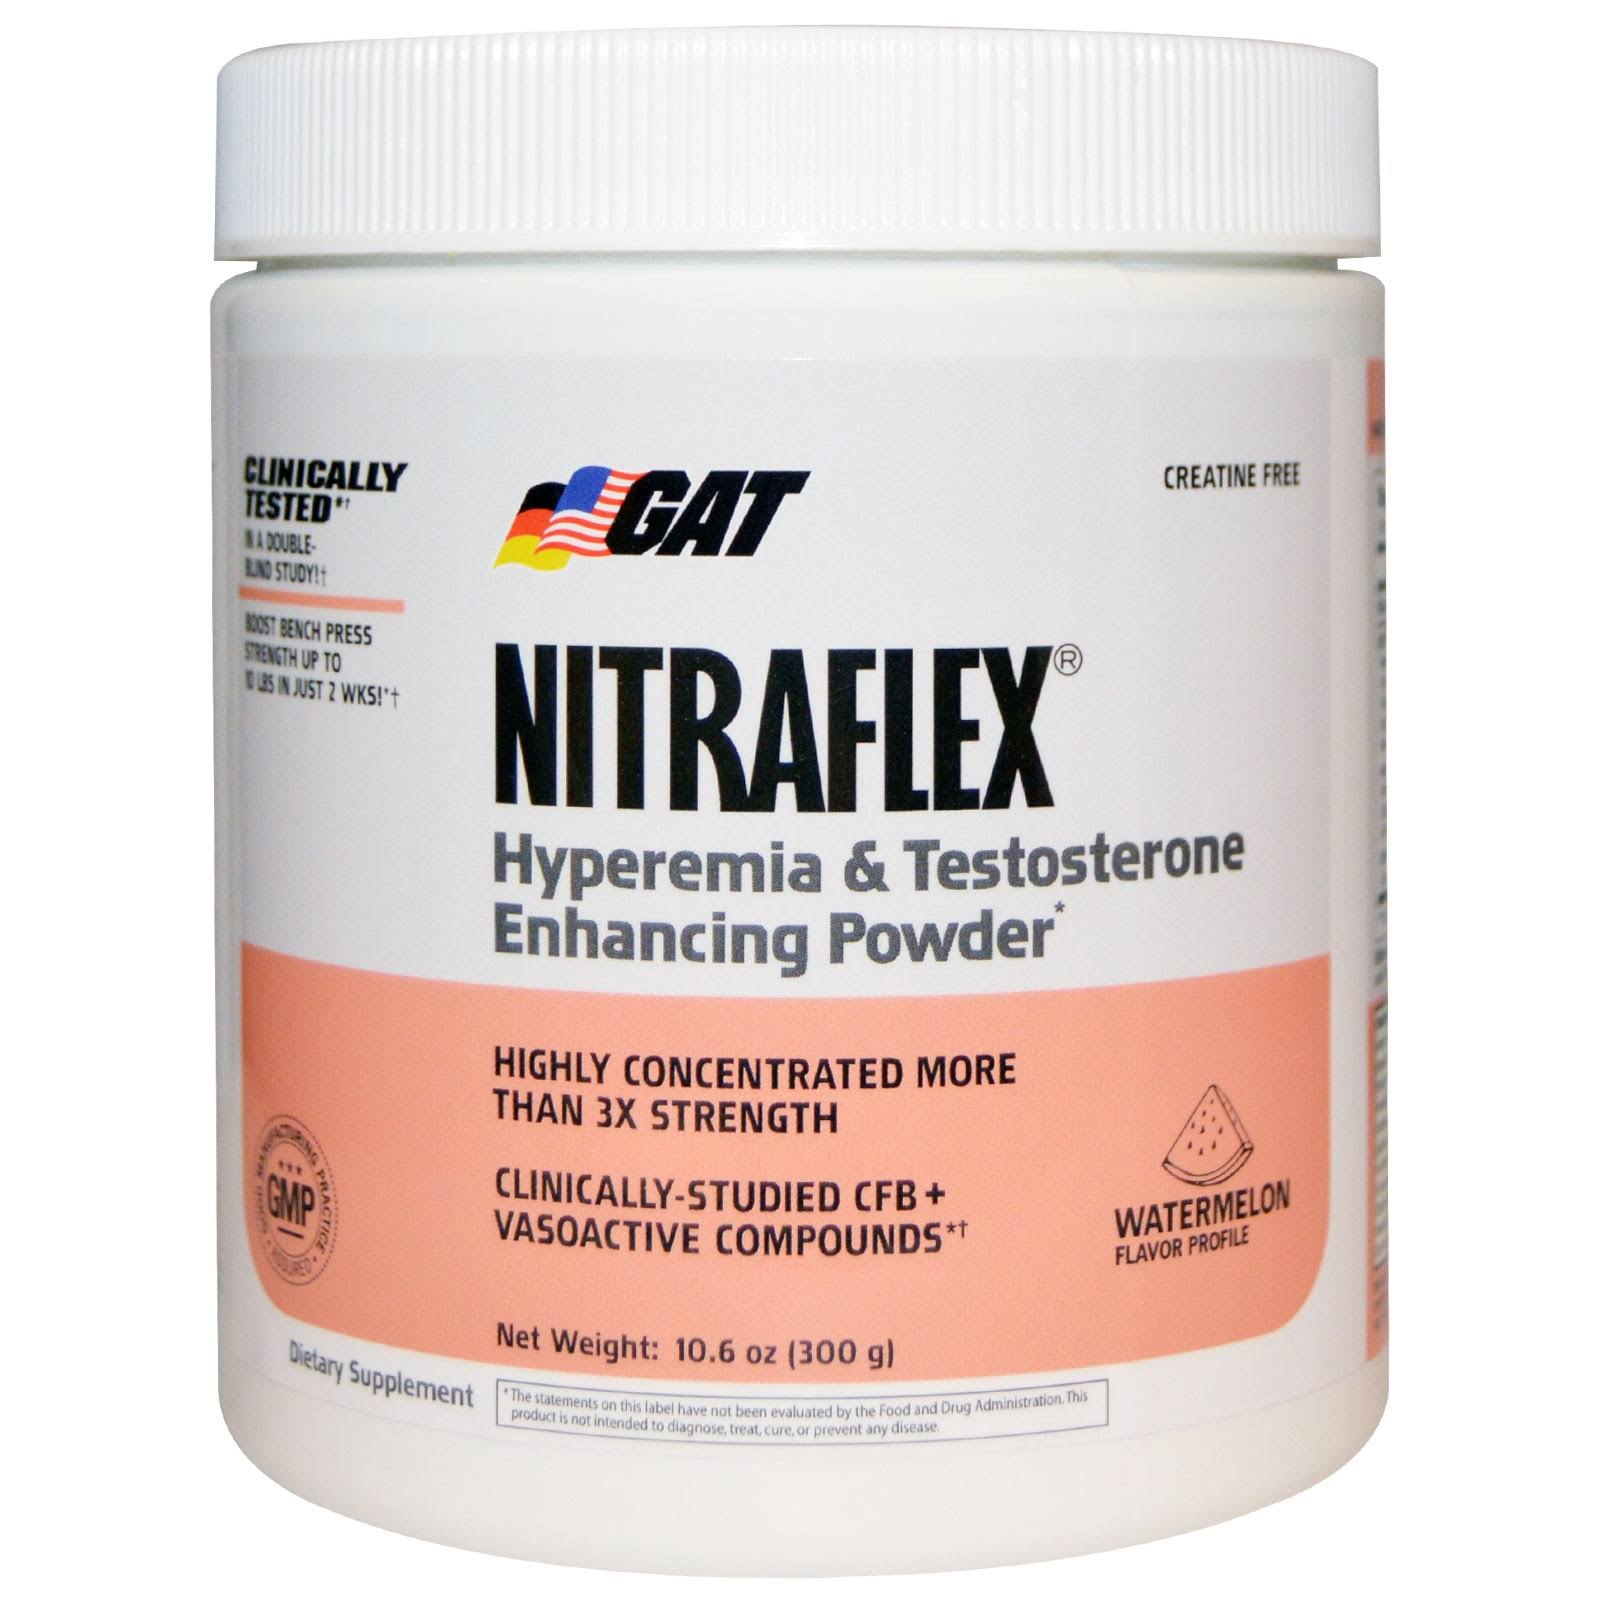 GAT Clinically Tested Nitraflex Testosterone Enhancing Pre Workout - Watermelon, 300g